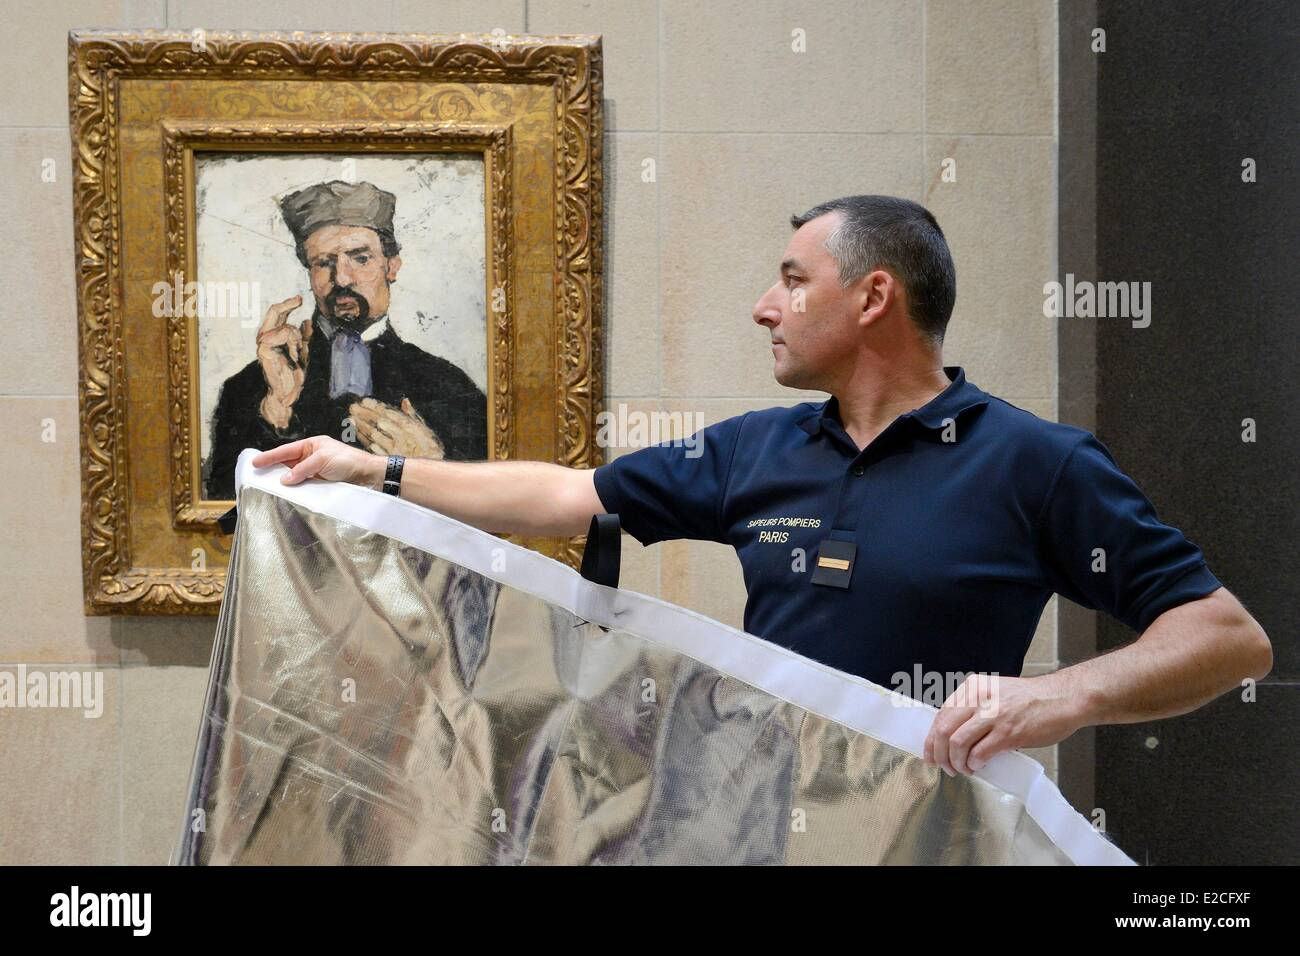 France, Paris, the Orsay Museum, the fireman Chief Warrant Officer Xavier Tremeau using a cover designed specifically - Stock Image